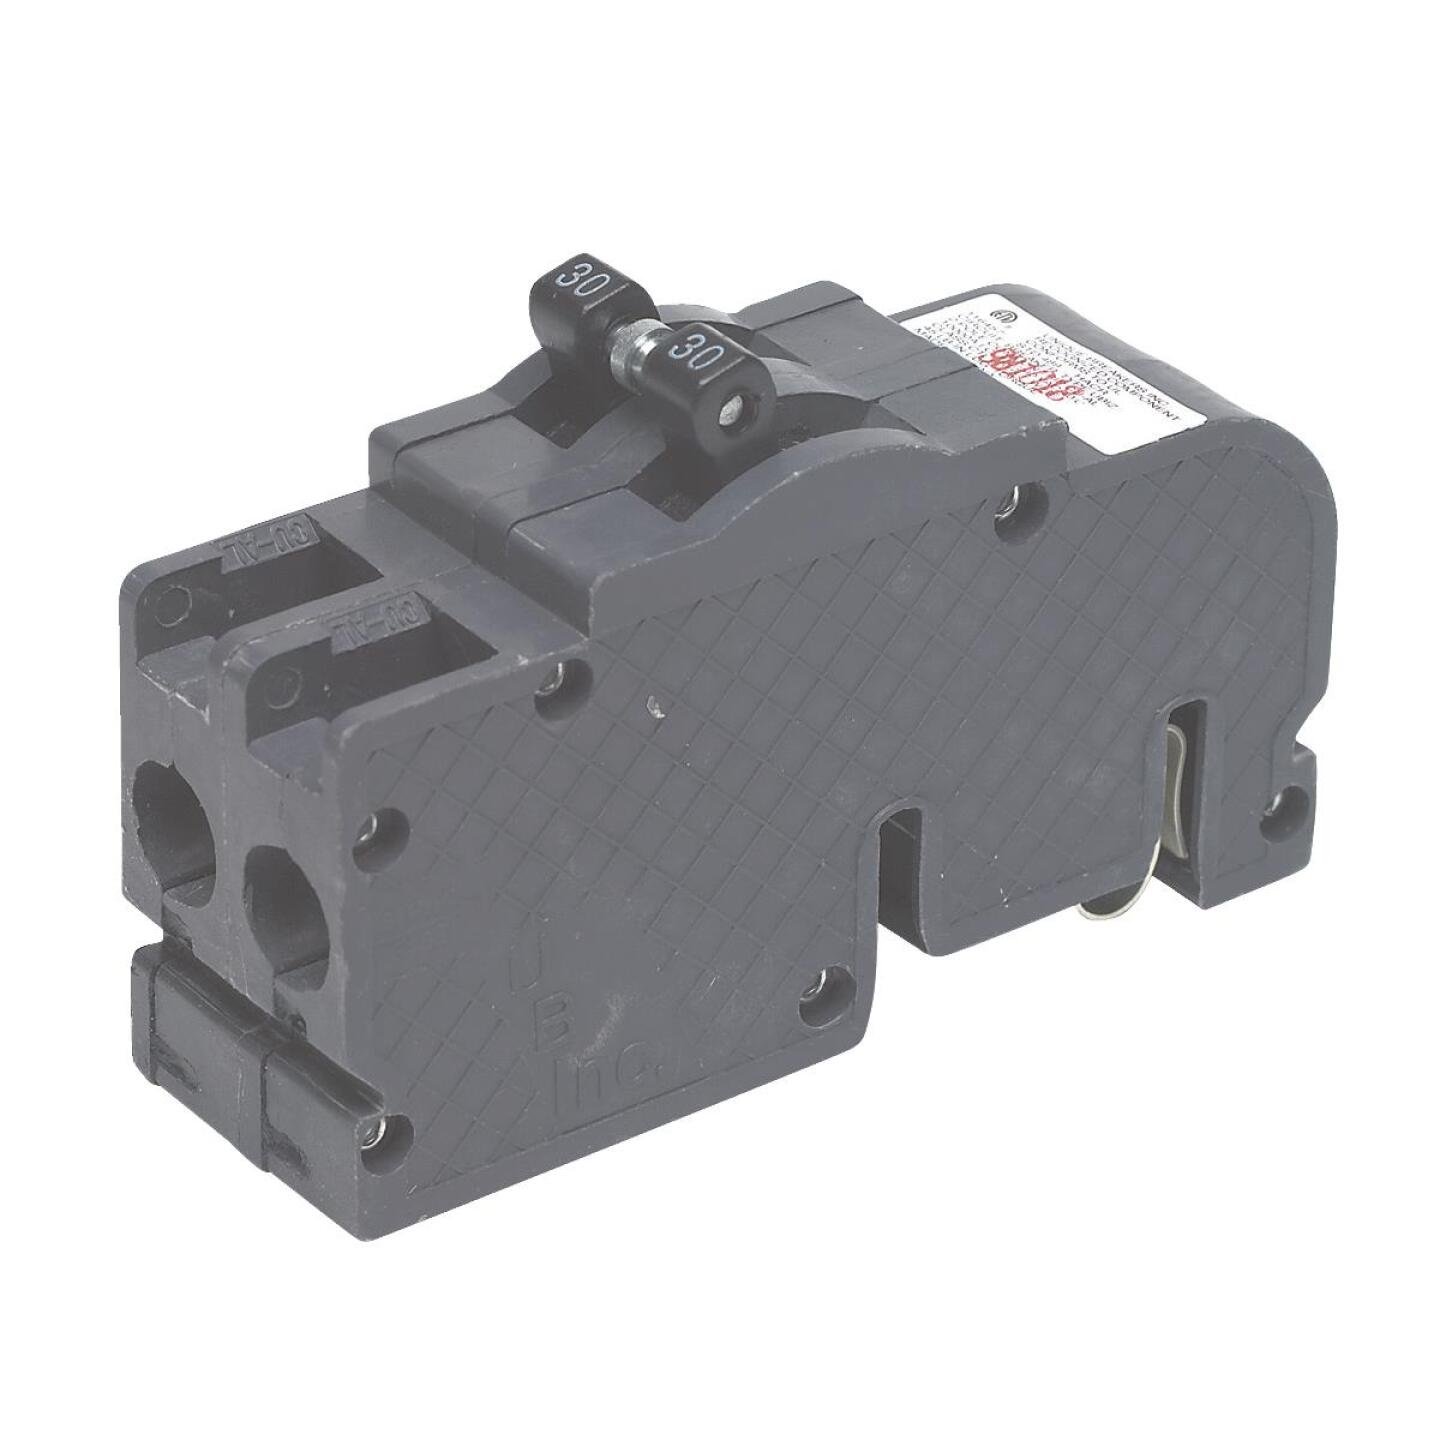 Connecticut Electric 40A Double-Pole Standard Trip Packaged Replacement Circuit Breaker For Zinsco Image 1